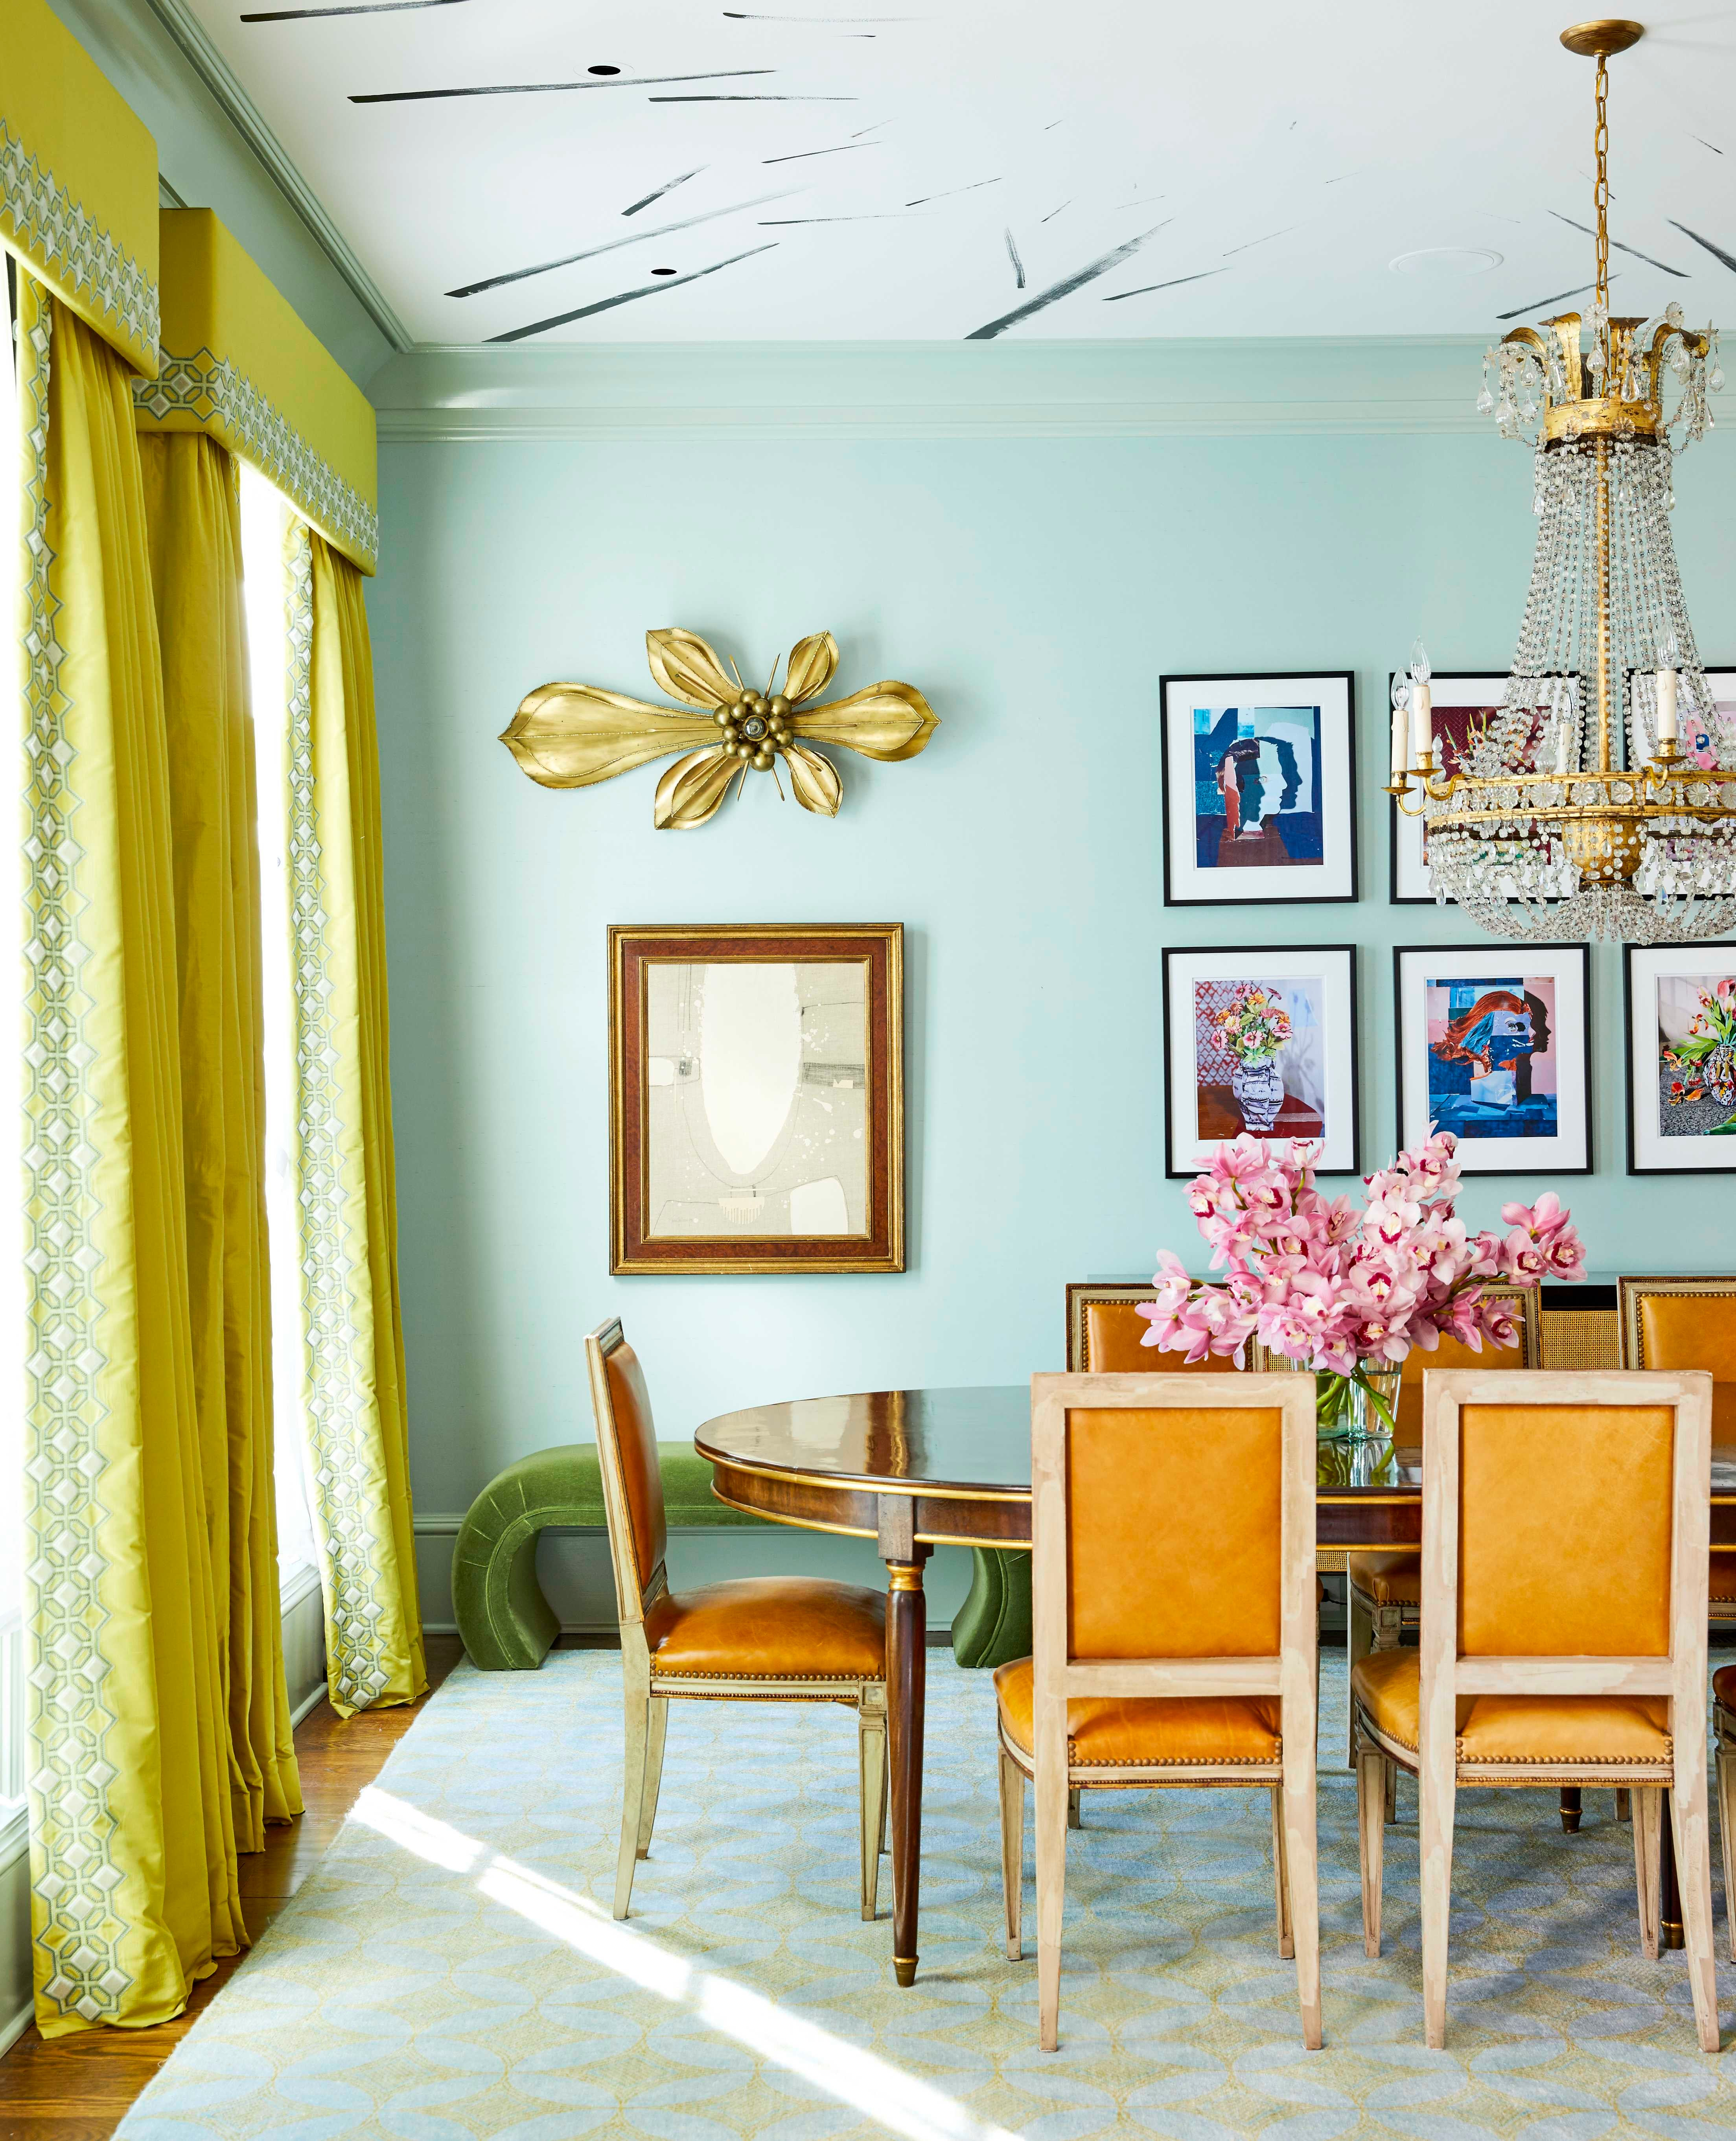 Dining Room In Charlotte, NC By Barrie Benson Interior Design